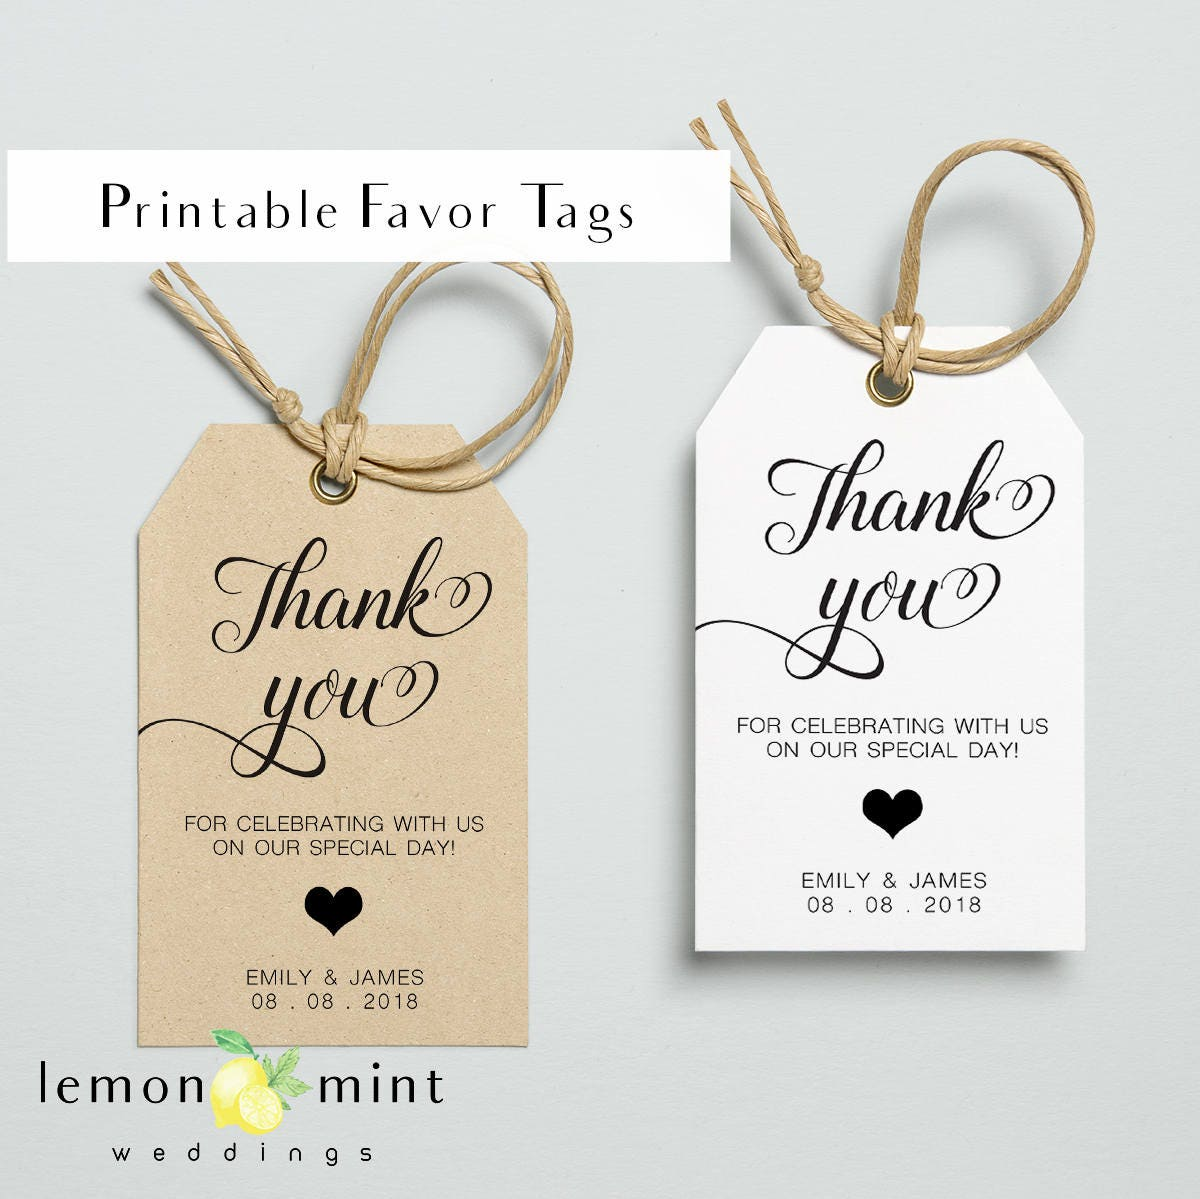 Légend image pertaining to printable wedding favor tags